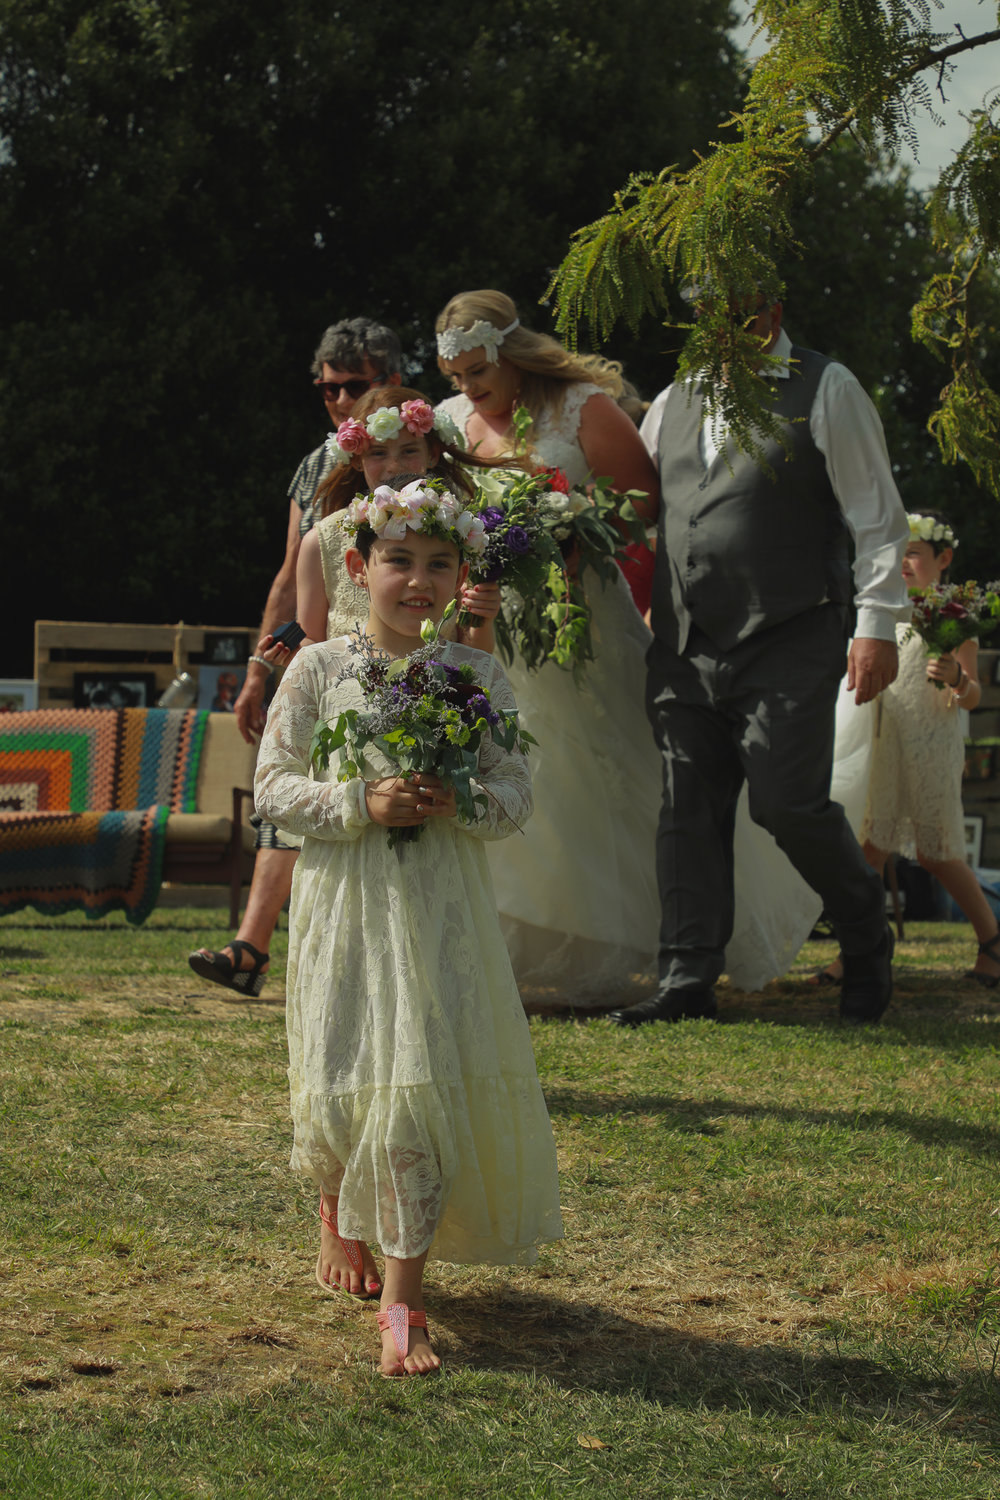 wedding-photography-flower-girl-walking-in.jpg